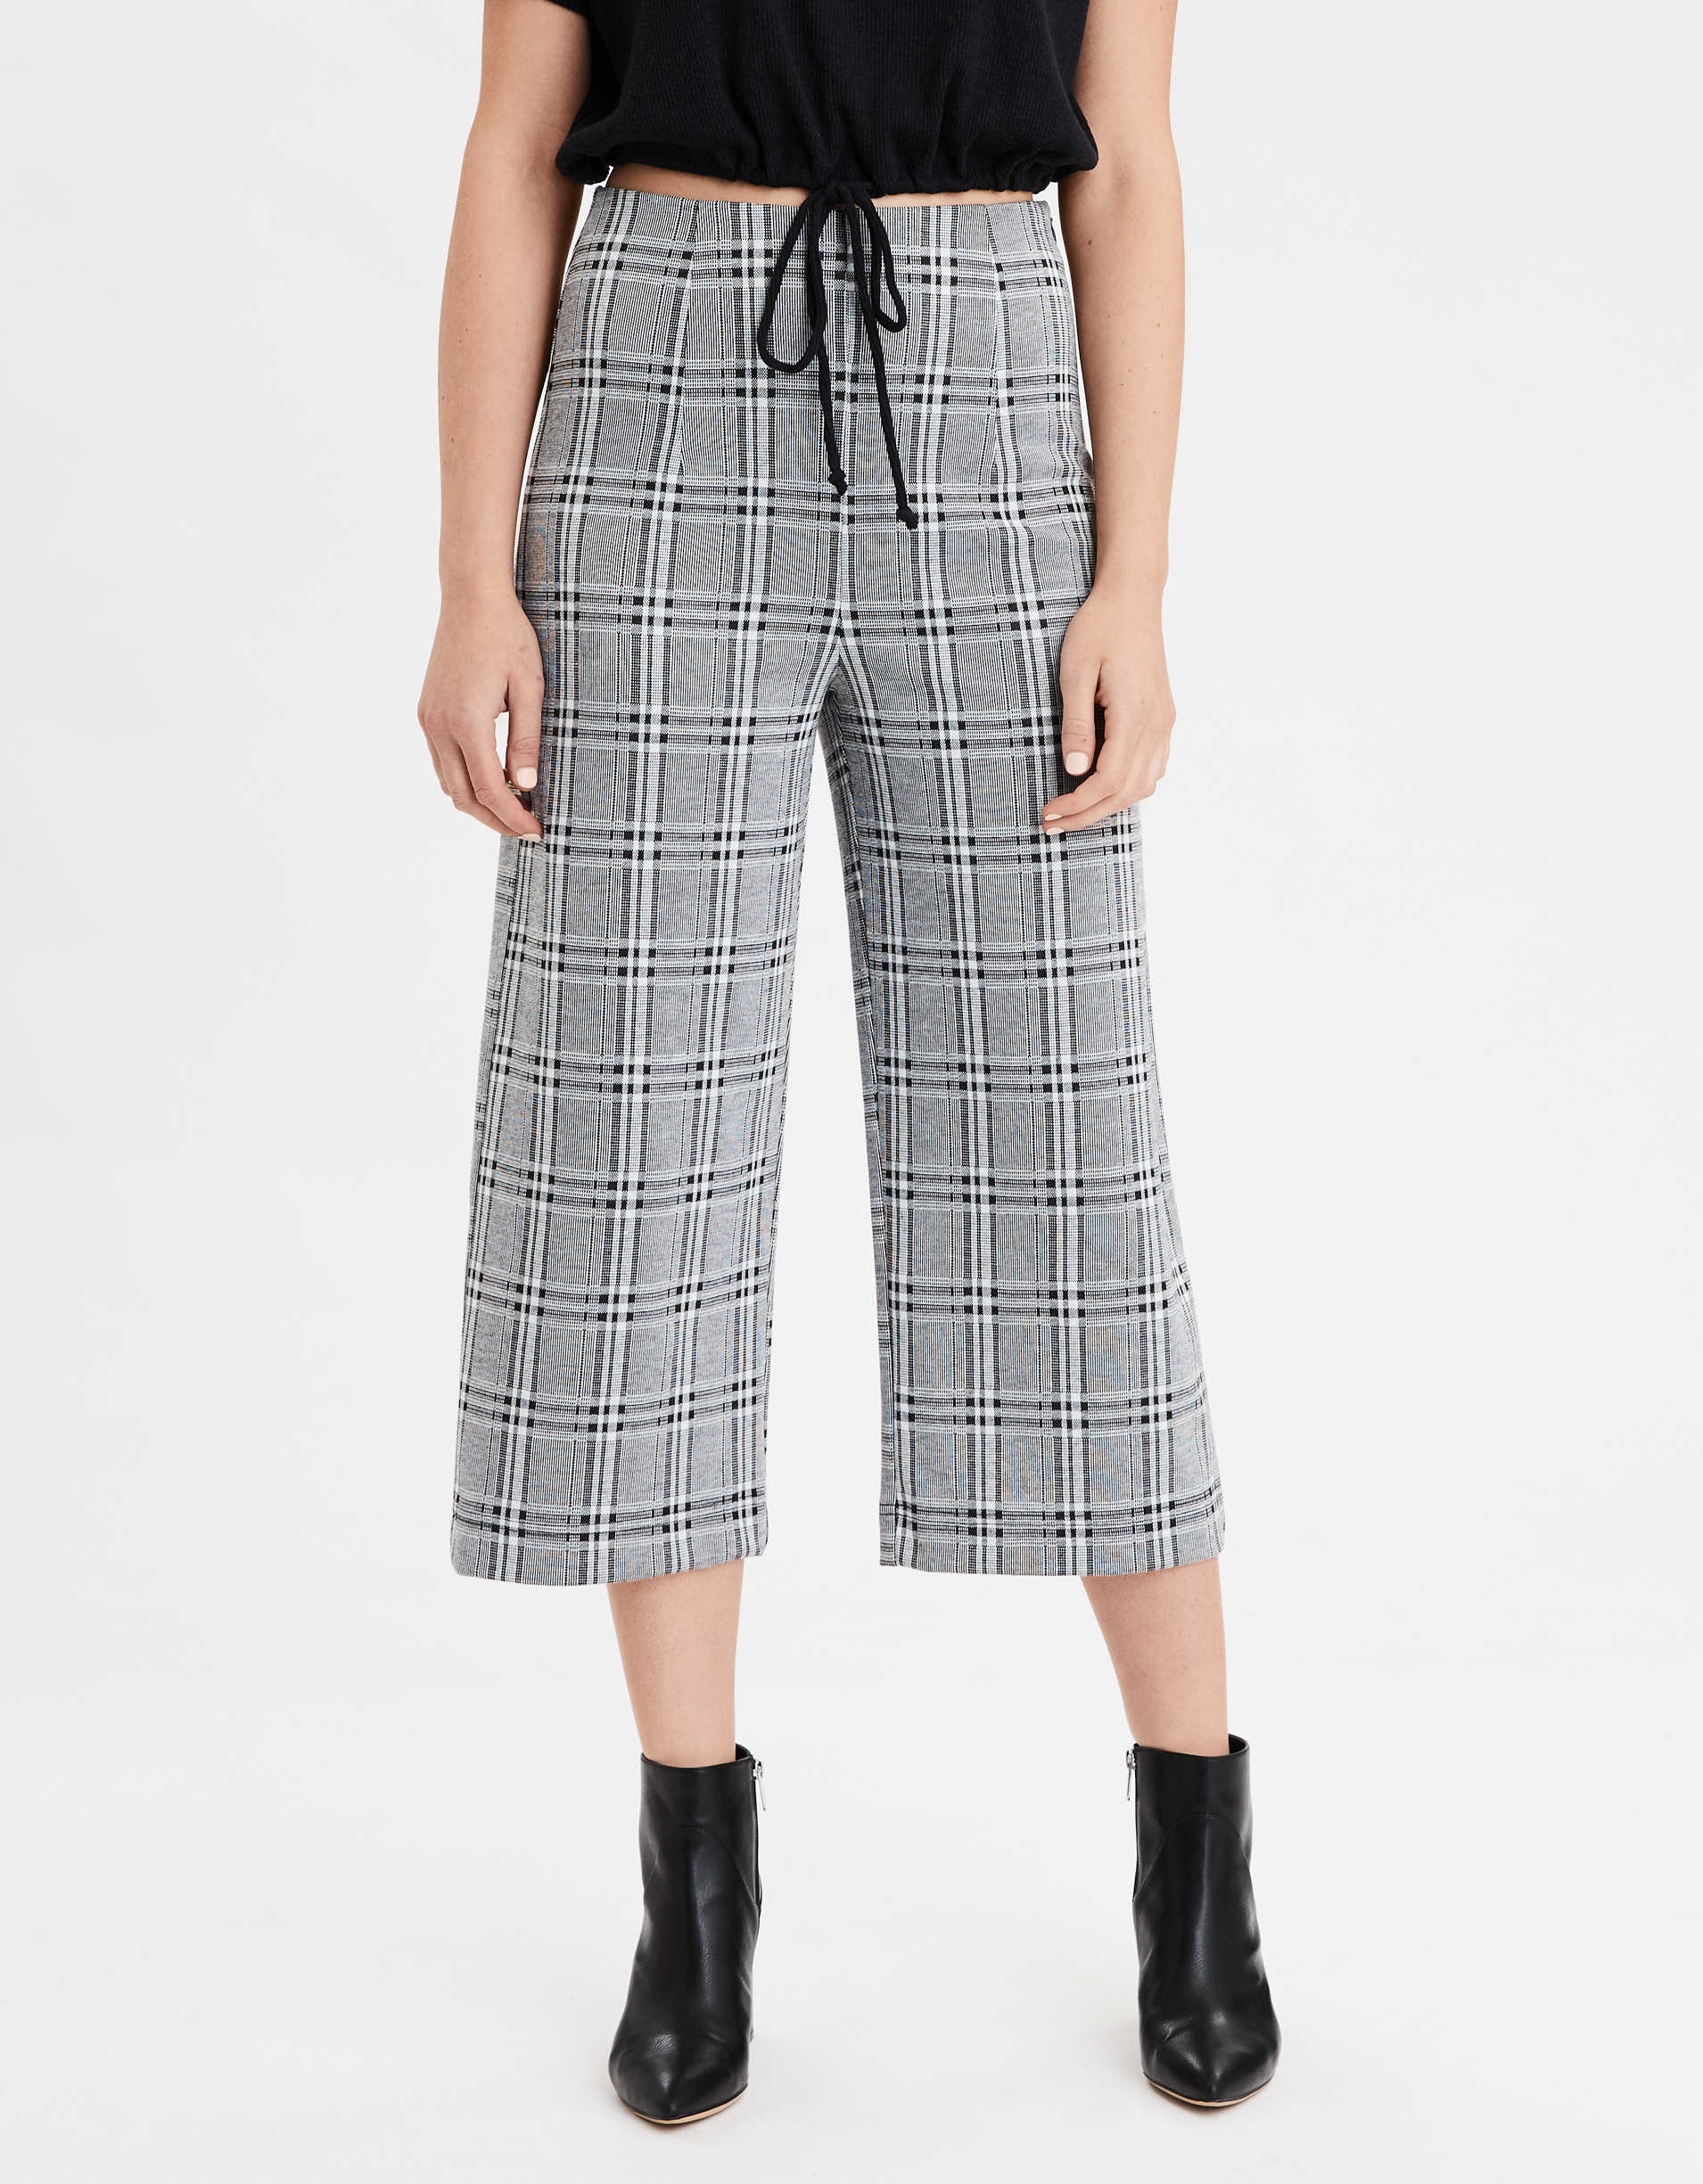 AE High Waisted Plaid Culotte Pant